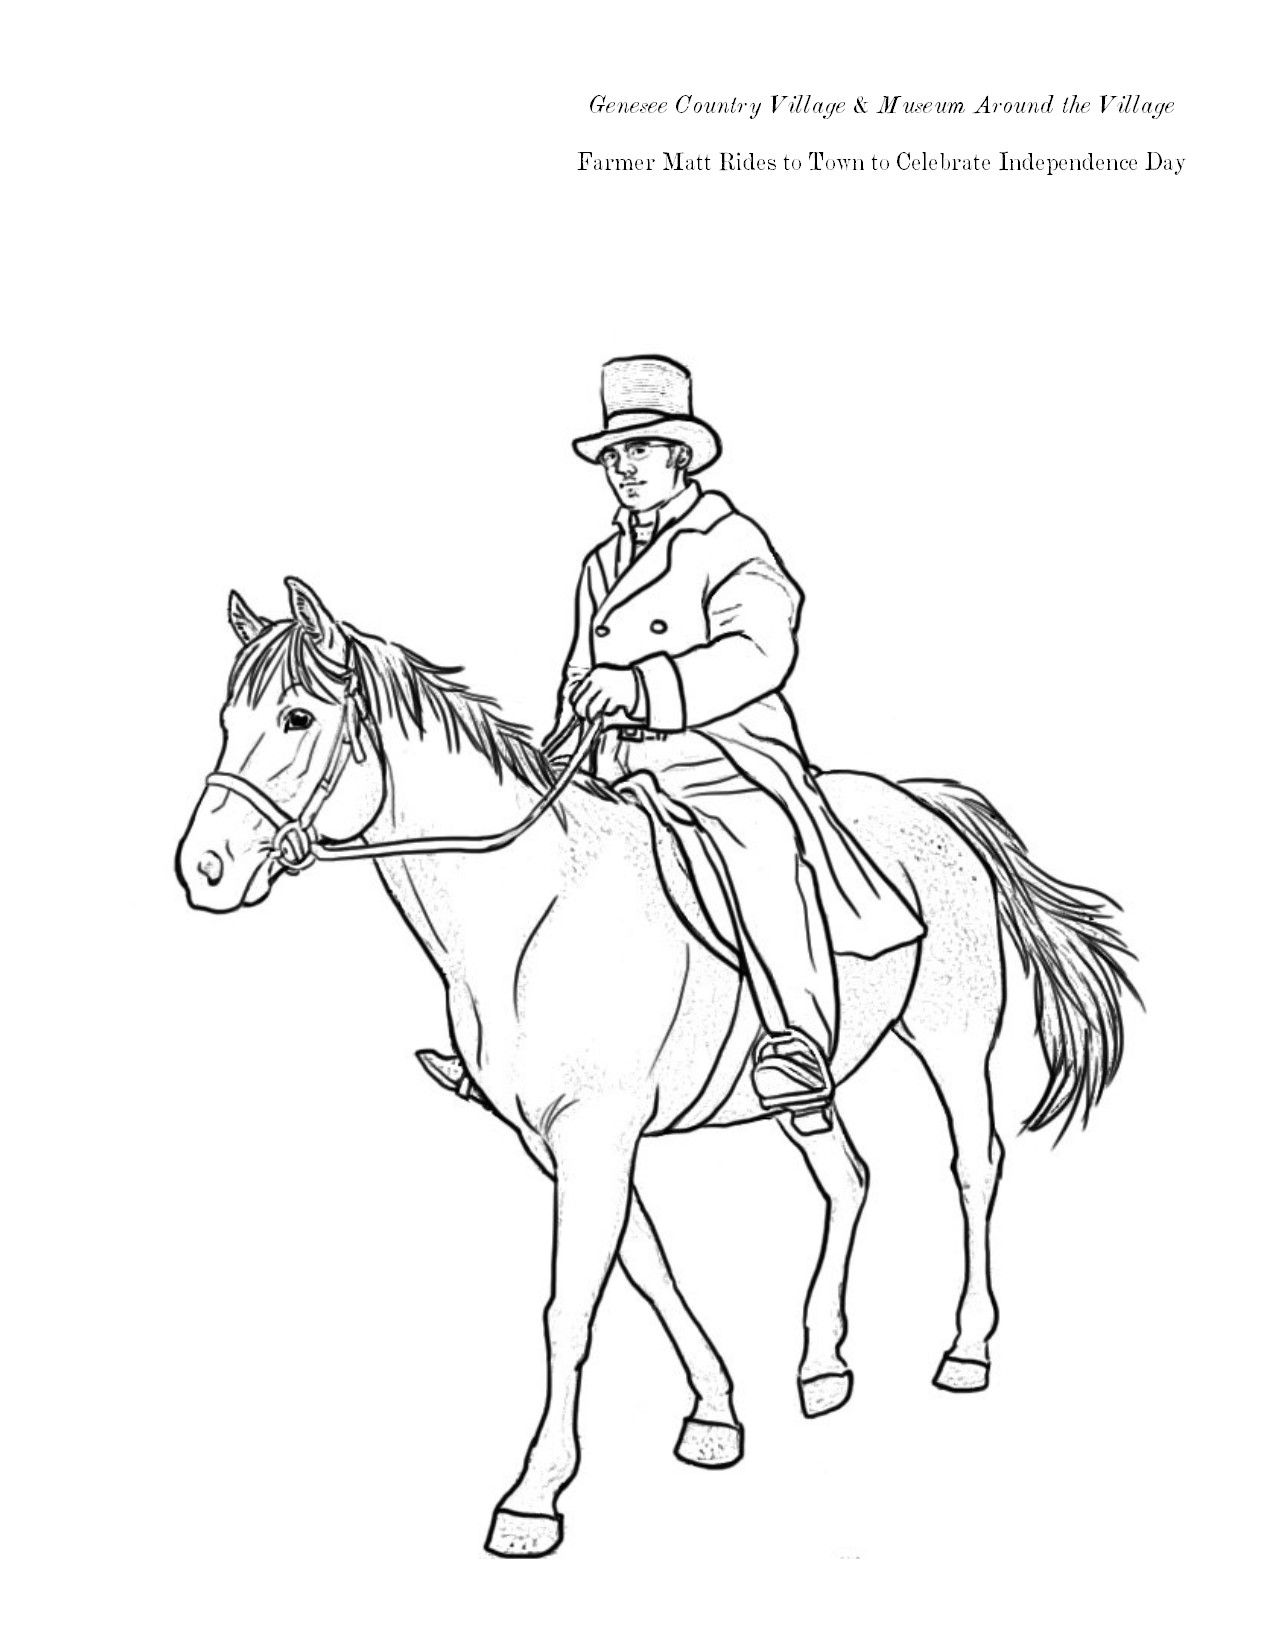 Around The Village Coloring Pages Farmer Matt Rides To Town Family Fun Museum Historical [ 1650 x 1275 Pixel ]